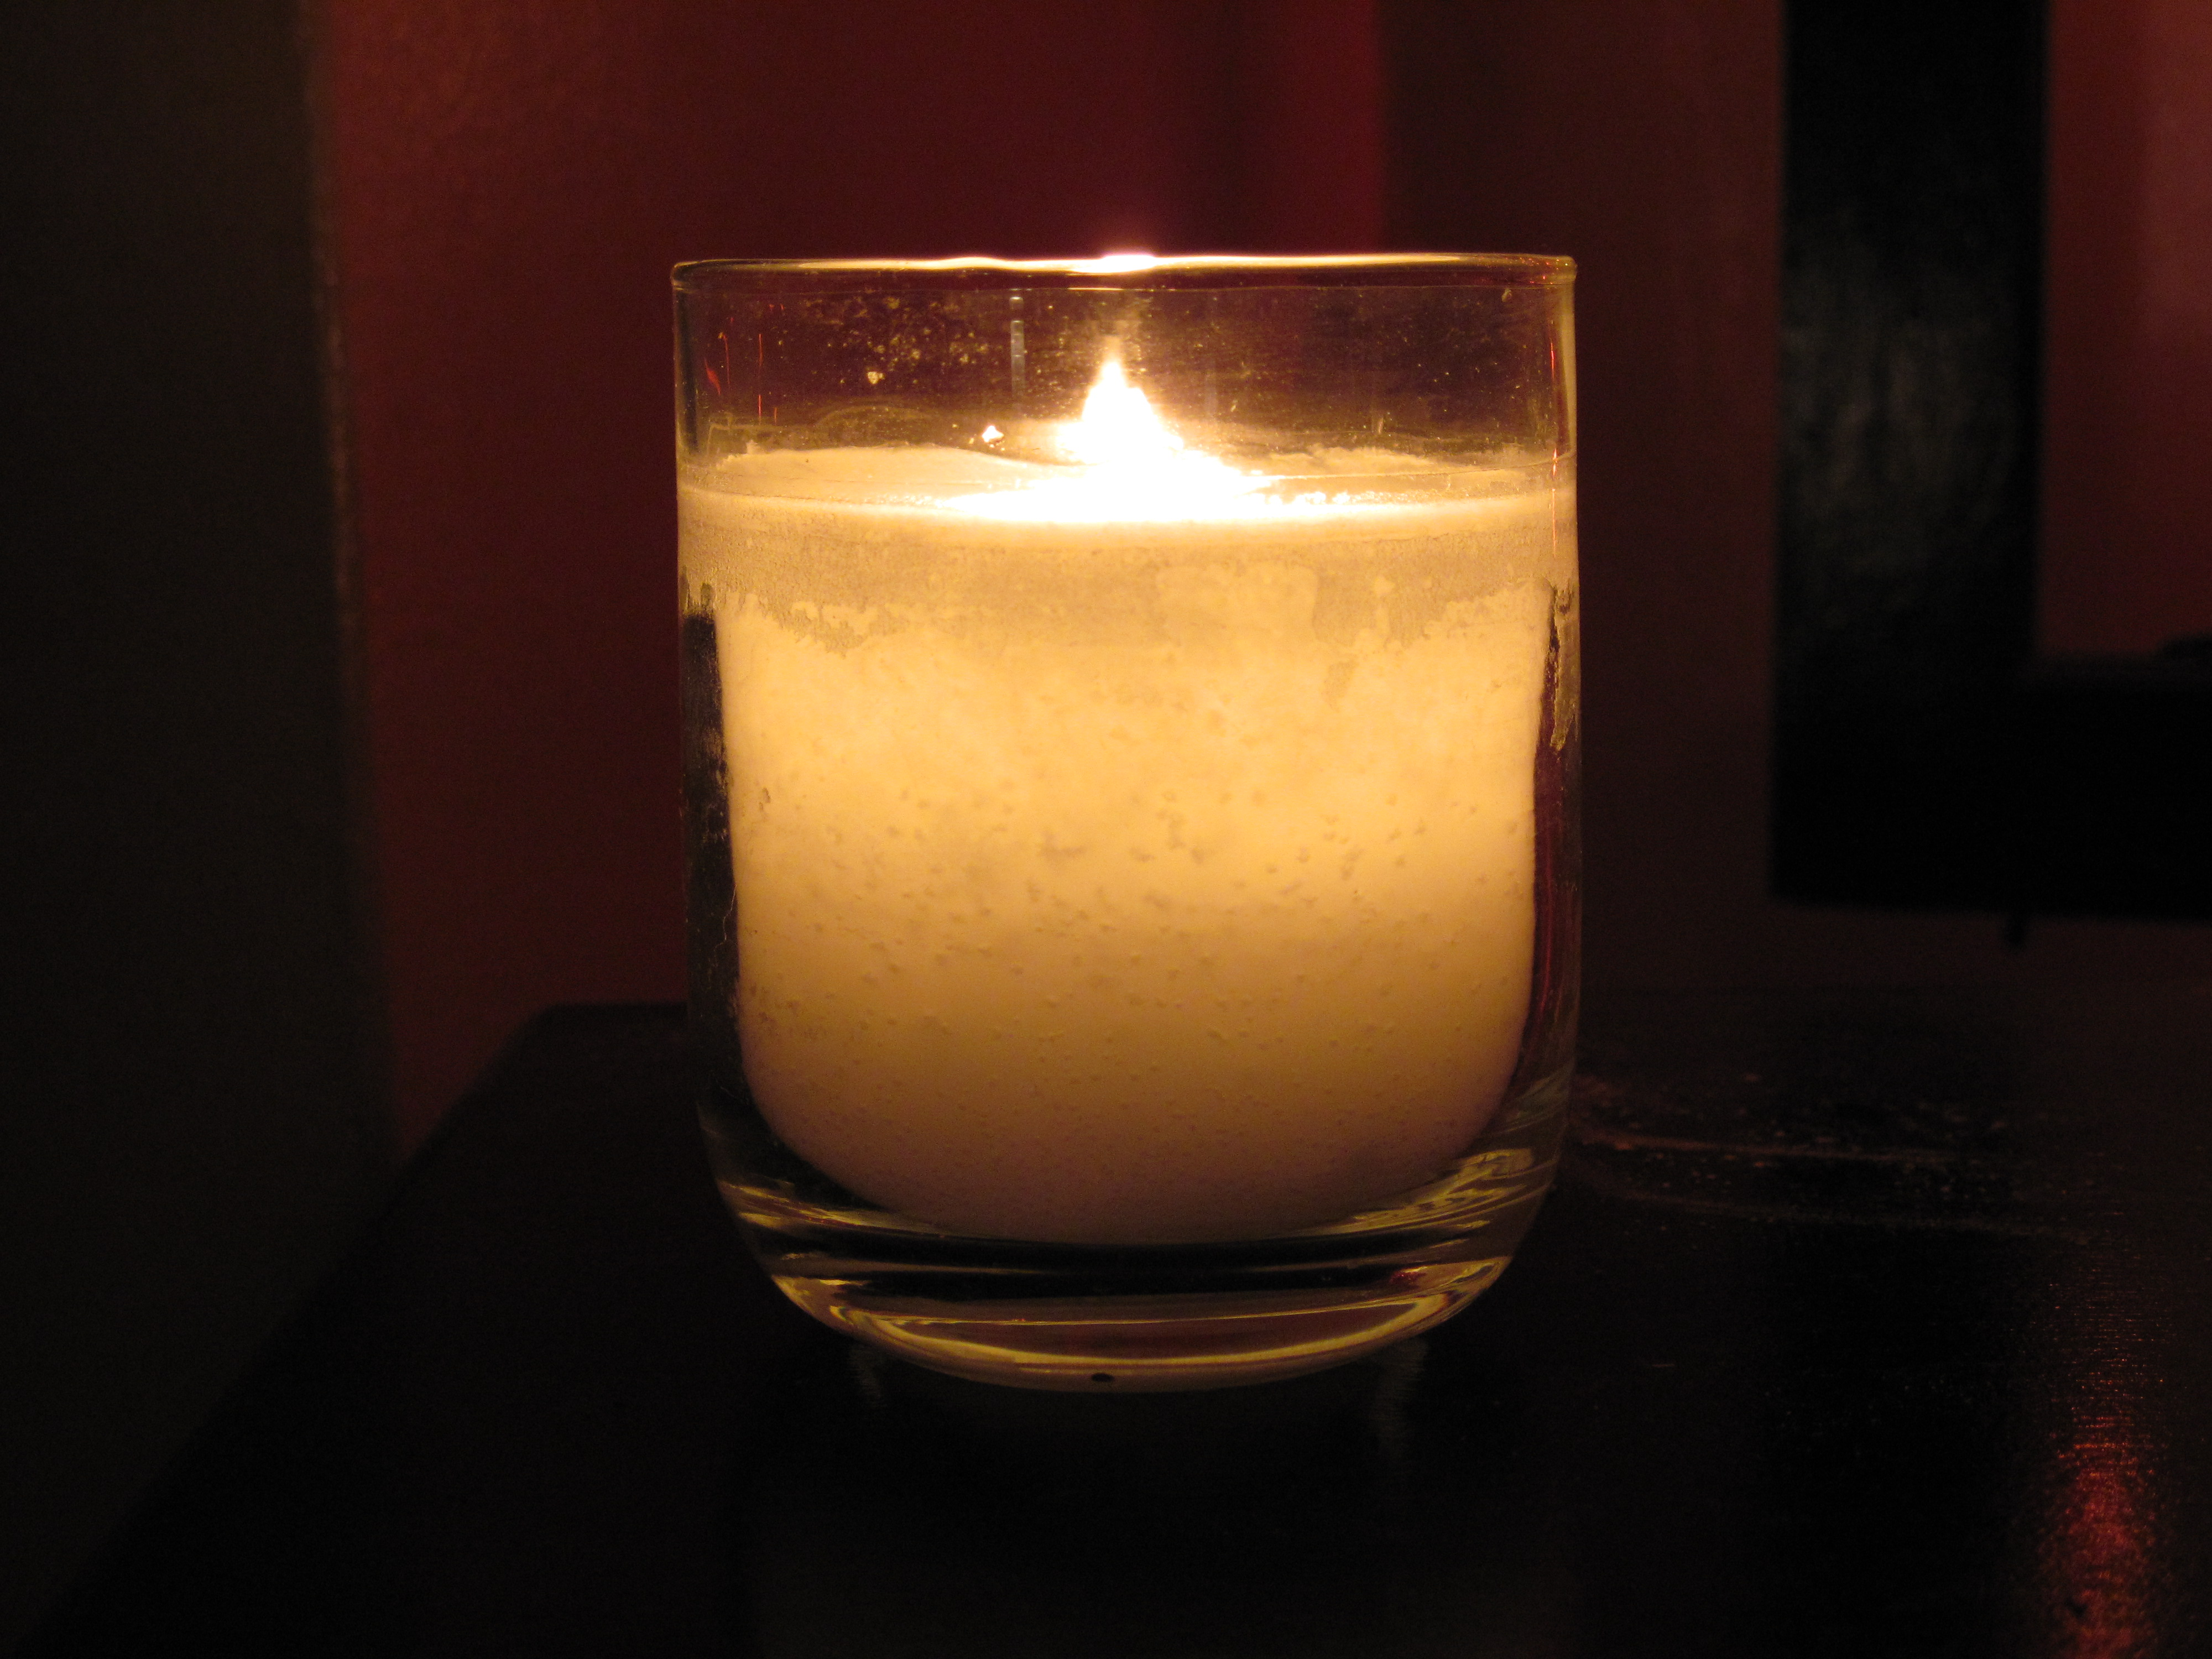 Uncategorized Candles In Room how to make scented candles homemade lets us check some of the main advantages at home and why people love have these in their room